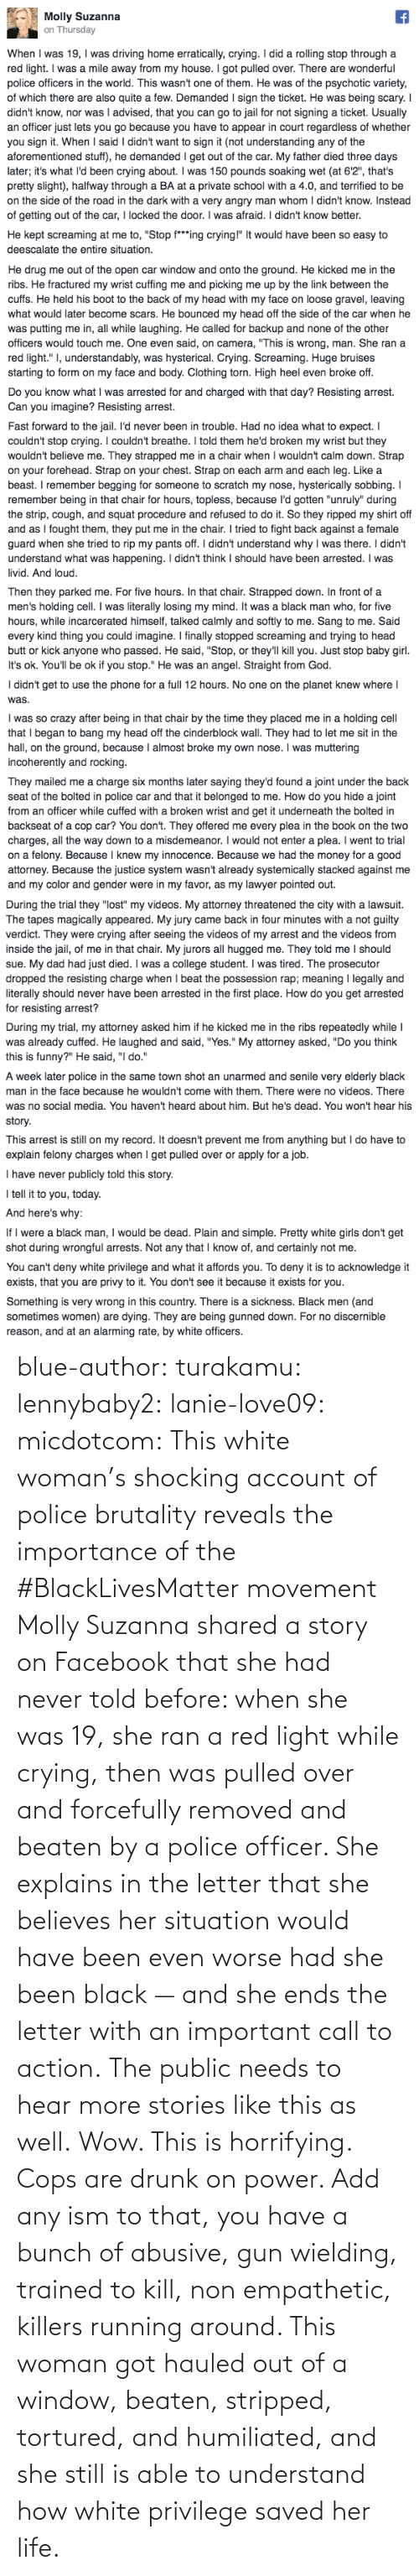 Removed: blue-author: turakamu:  lennybaby2:  lanie-love09:  micdotcom:  This white woman's shocking account of police brutality reveals the importance of the #BlackLivesMatter movement Molly Suzanna shared a story on Facebook that she had never told before: when she was 19, she ran a red light while crying, then was pulled over and forcefully removed and beaten by a police officer. She explains in the letter that she believes her situation would have been even worse had she been black — and she ends the letter with an important call to action.  The public needs to hear more stories like this as well.  Wow. This is horrifying.  Cops are drunk on power. Add any ism to that, you have a bunch of abusive, gun wielding, trained to kill, non empathetic, killers running around.    This woman got hauled out of a window, beaten, stripped, tortured, and humiliated, and she still is able to understand how white privilege saved her life.